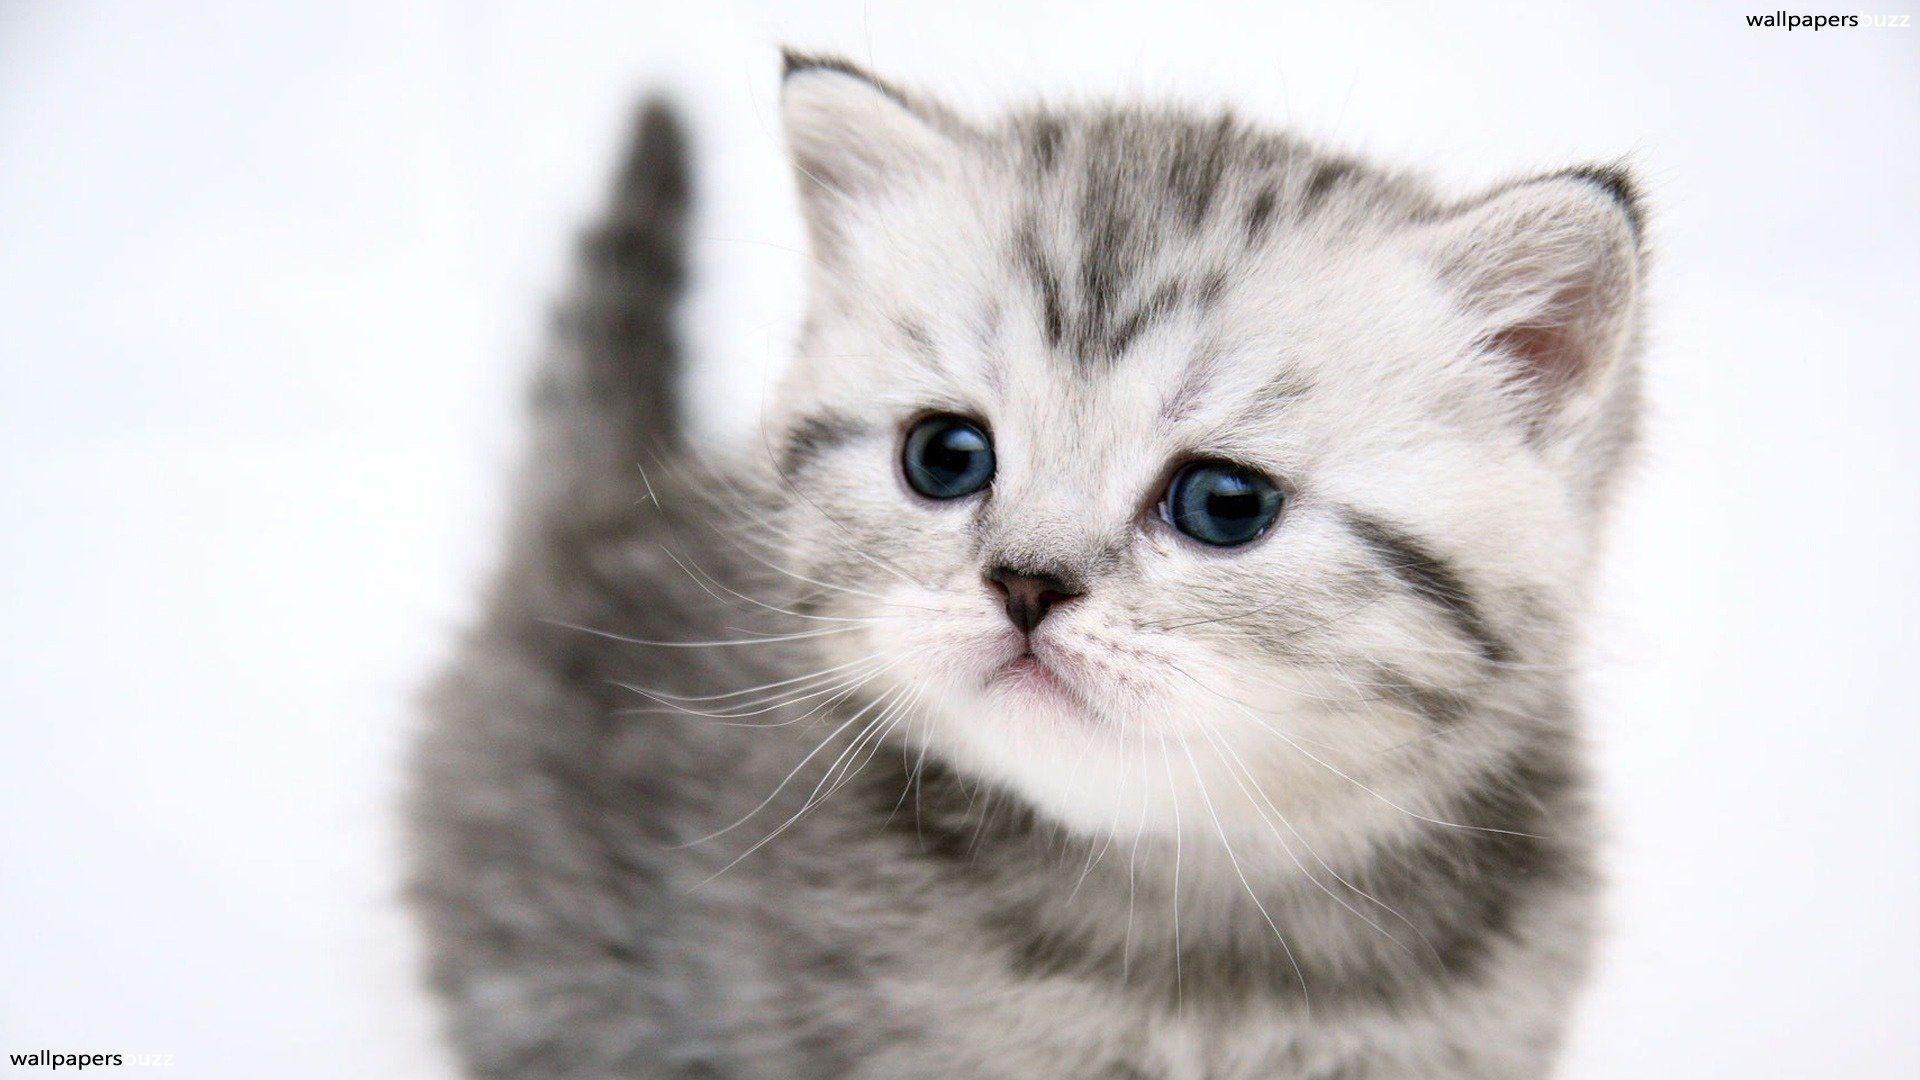 Res: 1920x1080, kittens   Super Cute Baby Kittens Wallpapers Part 2 - Design Hey   Design  Hey .